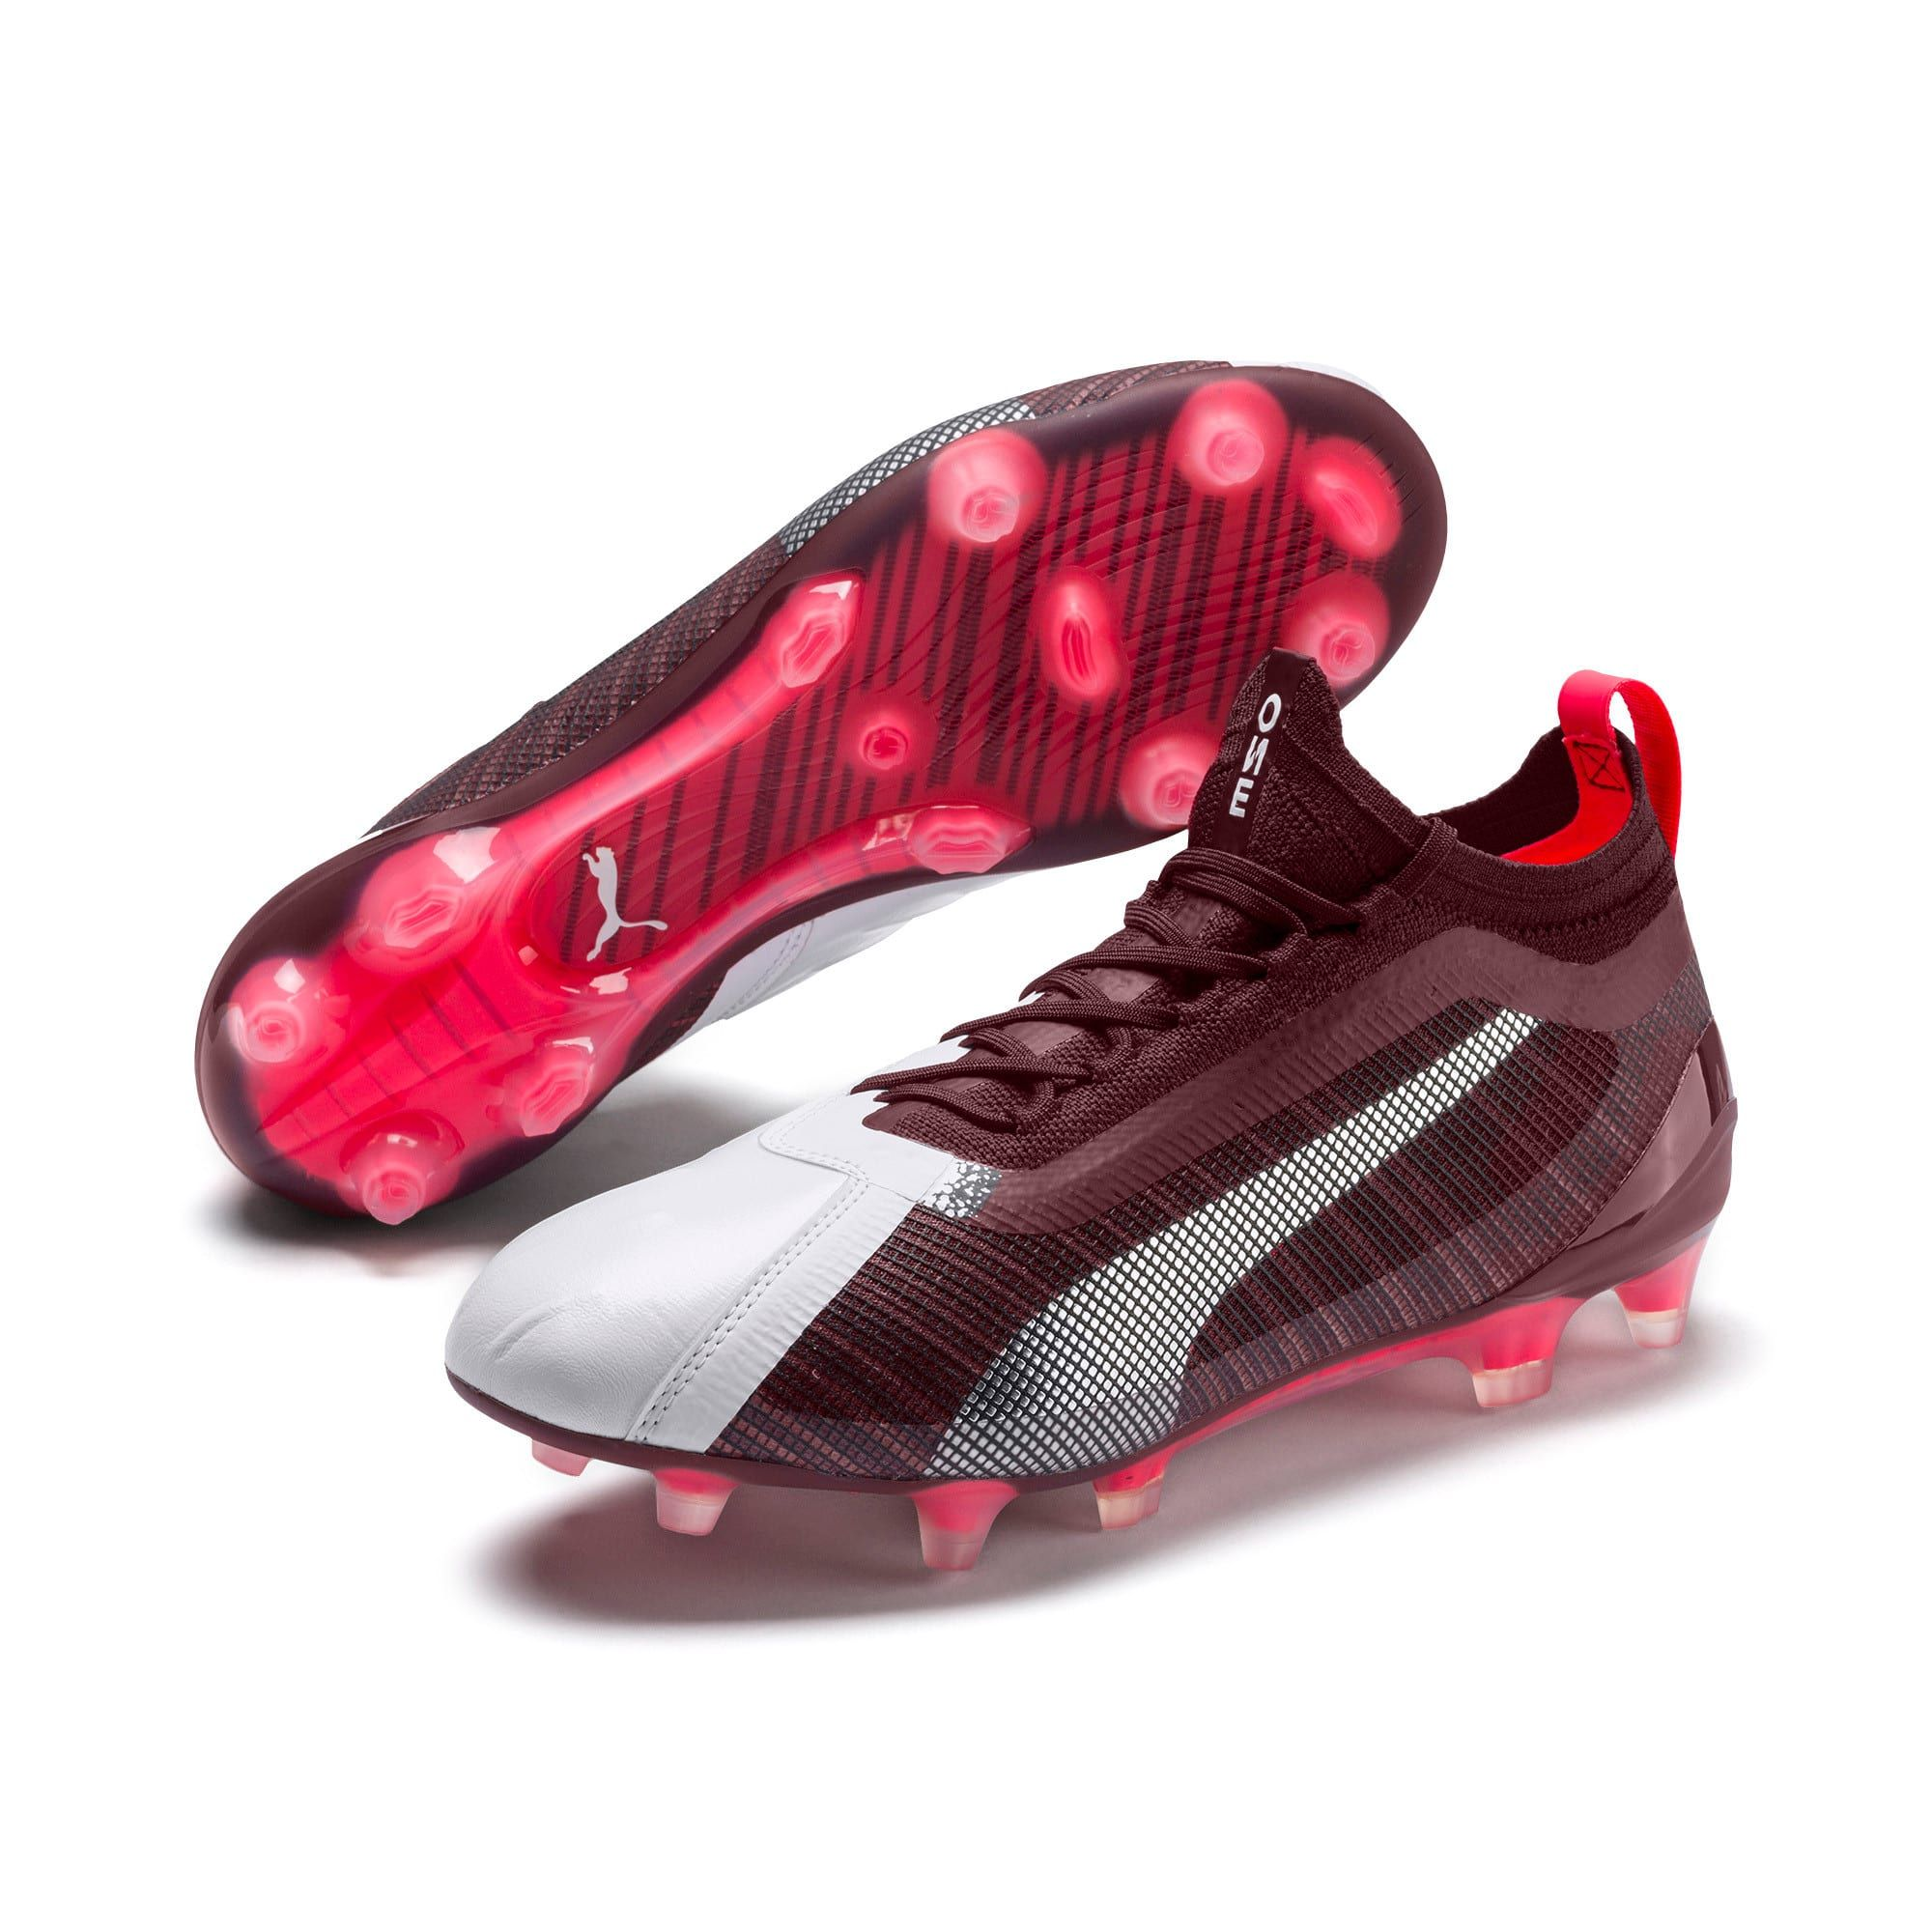 PUMA One 5.1 Women's Football Boots in White/Vineyard Wine ...